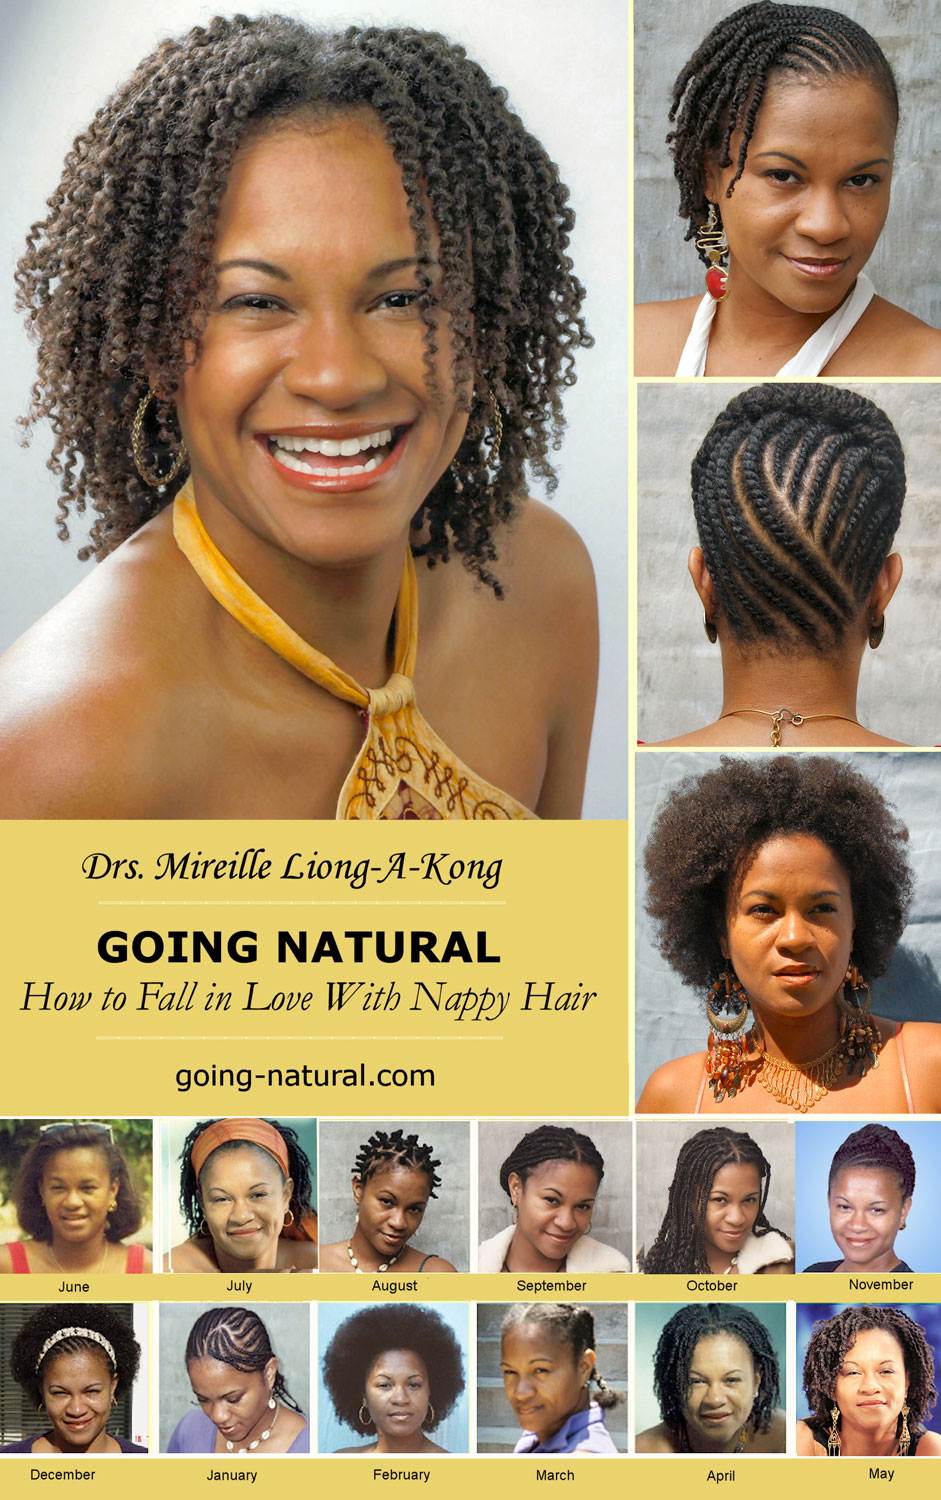 Going Natural: How to Fall in Love with Nappy Hair By: Mireille Liong-A-Kong